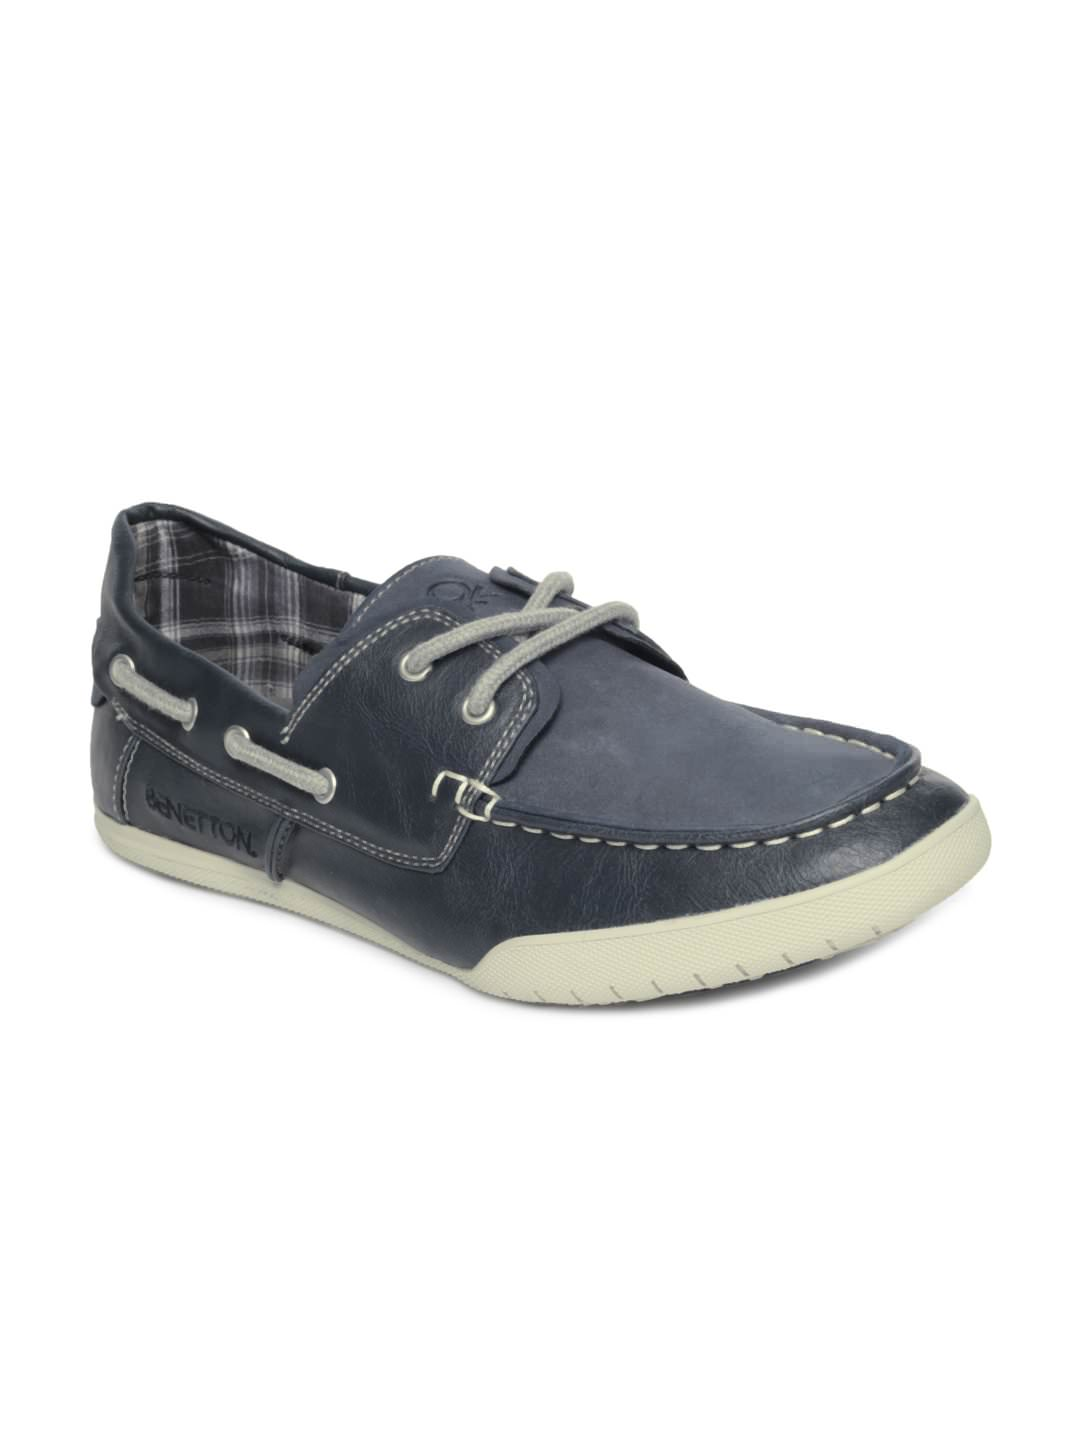 trendy casual shoes for men 2013 inkcloth